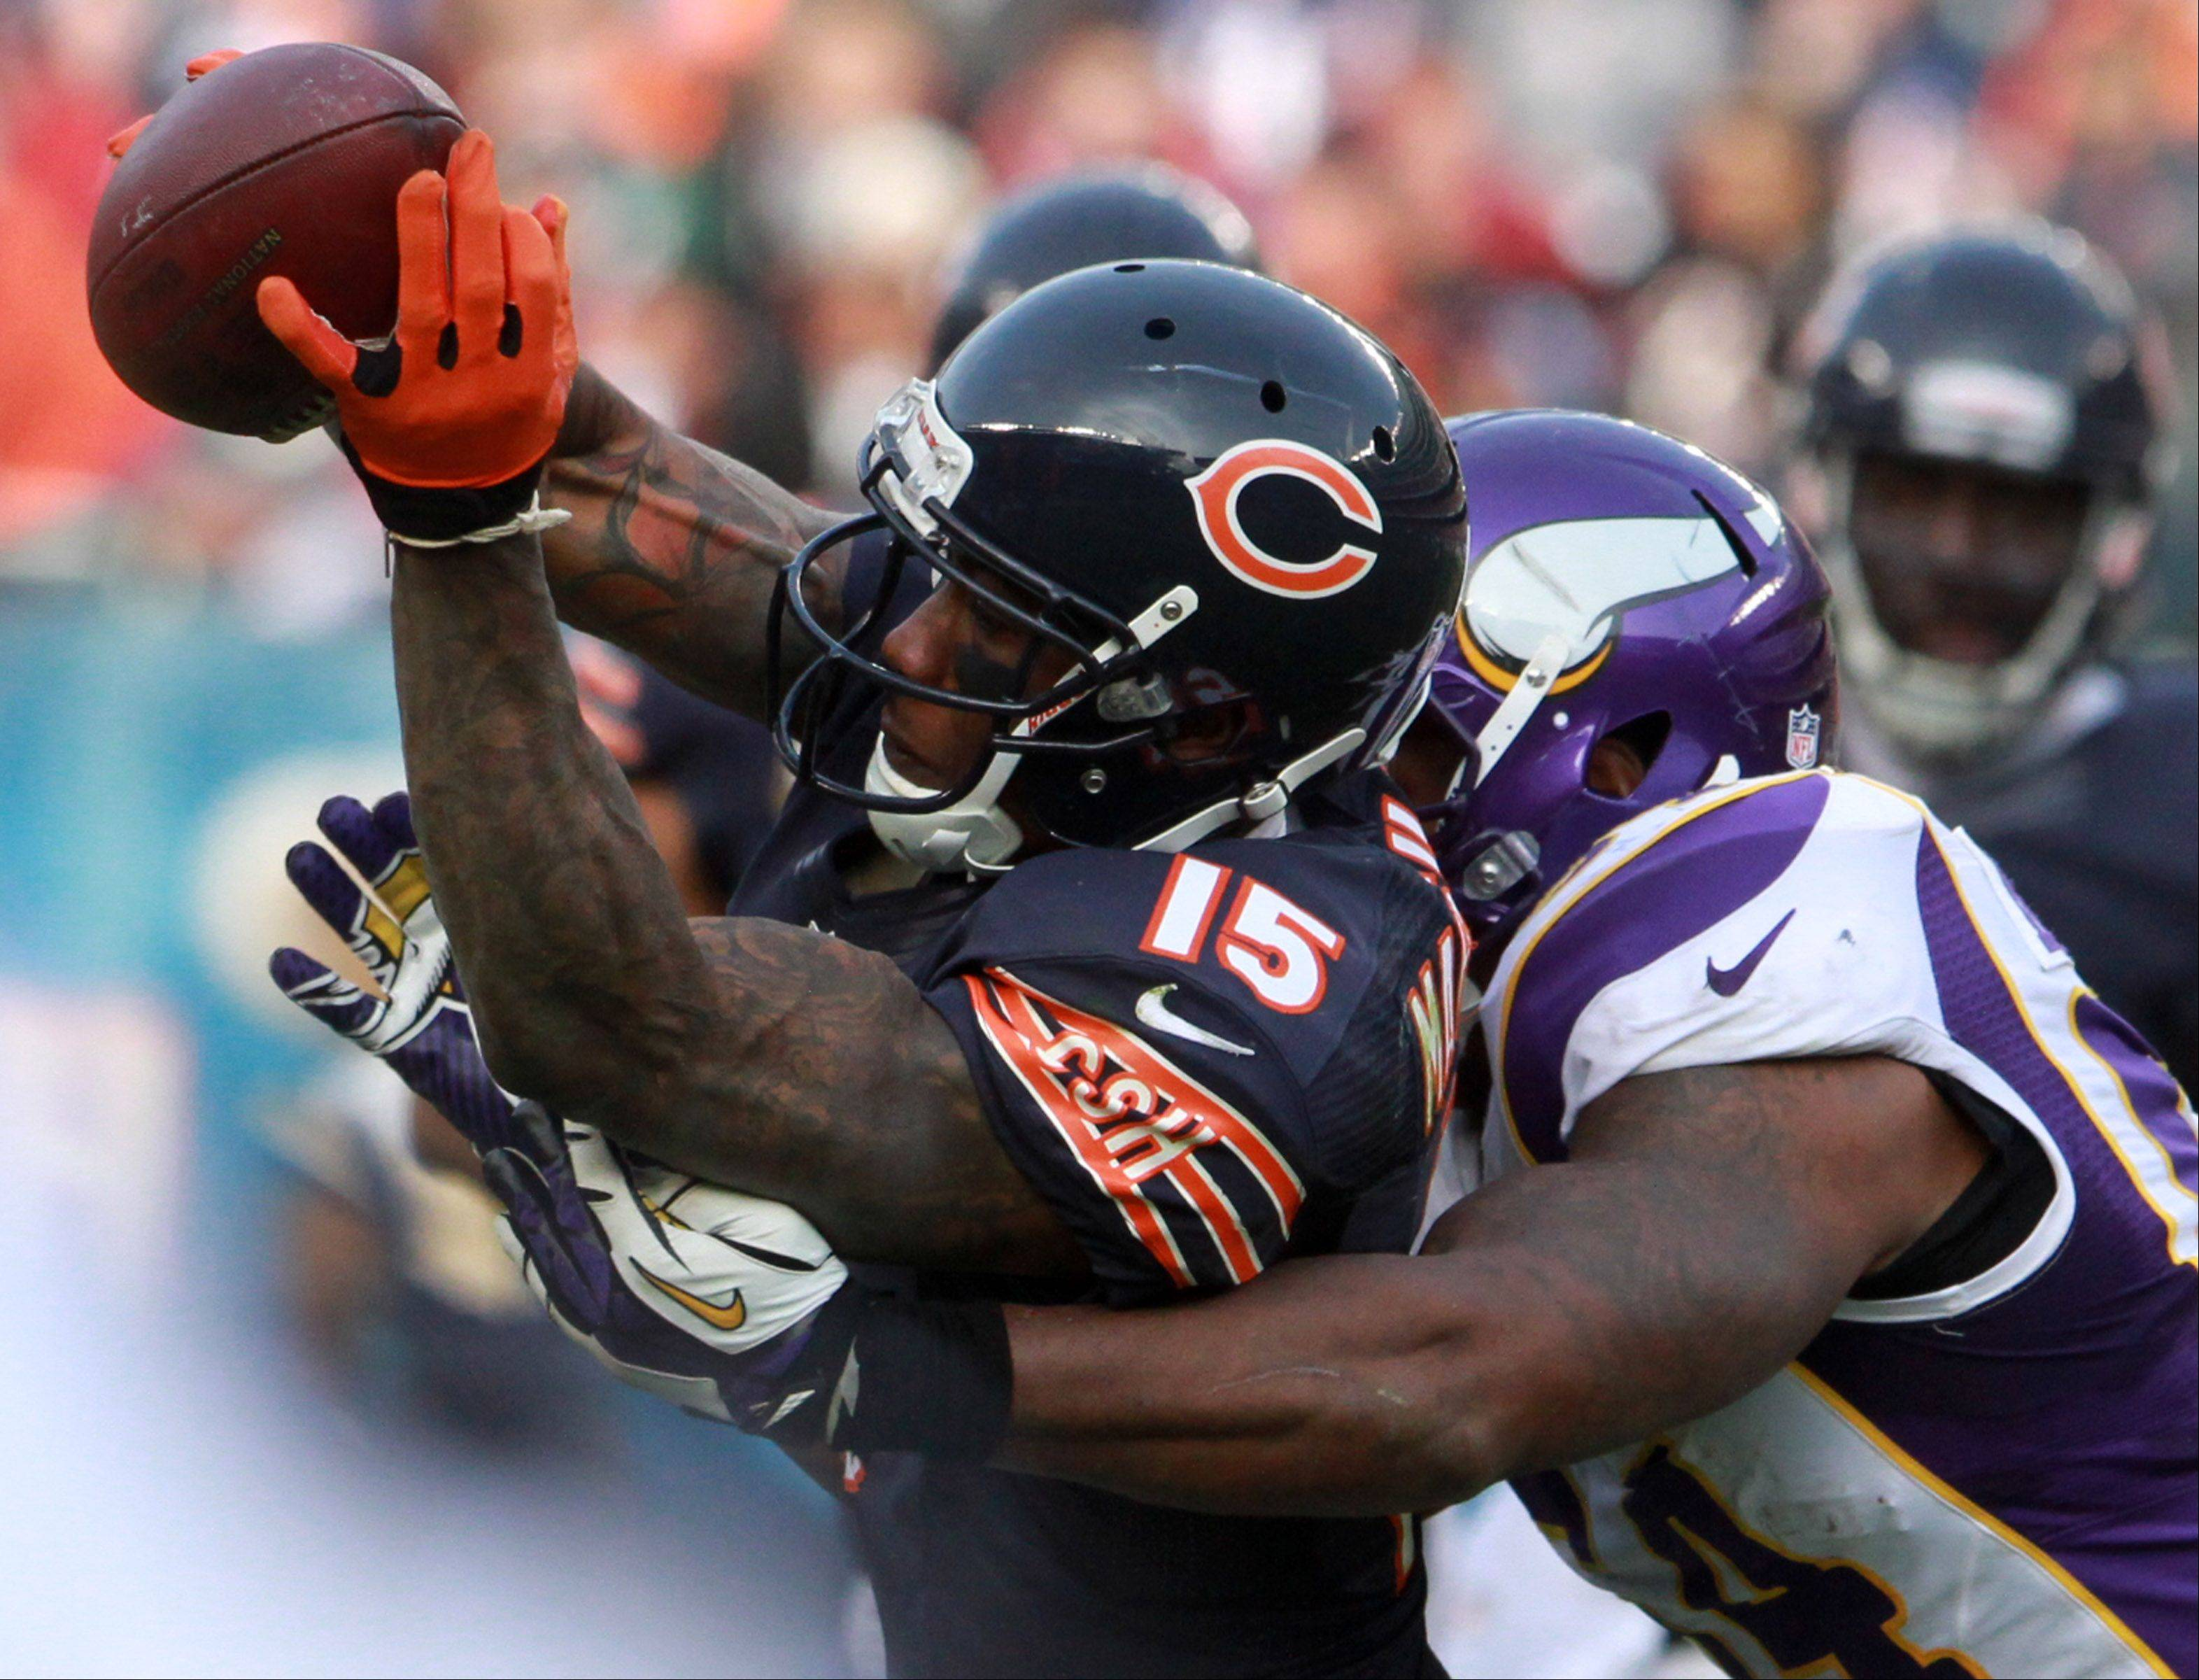 Chicago Bears Brandon Marshall pulls in a pass against Minnesota Vikings' Jasper Brinkley at Soldier Field Sunday